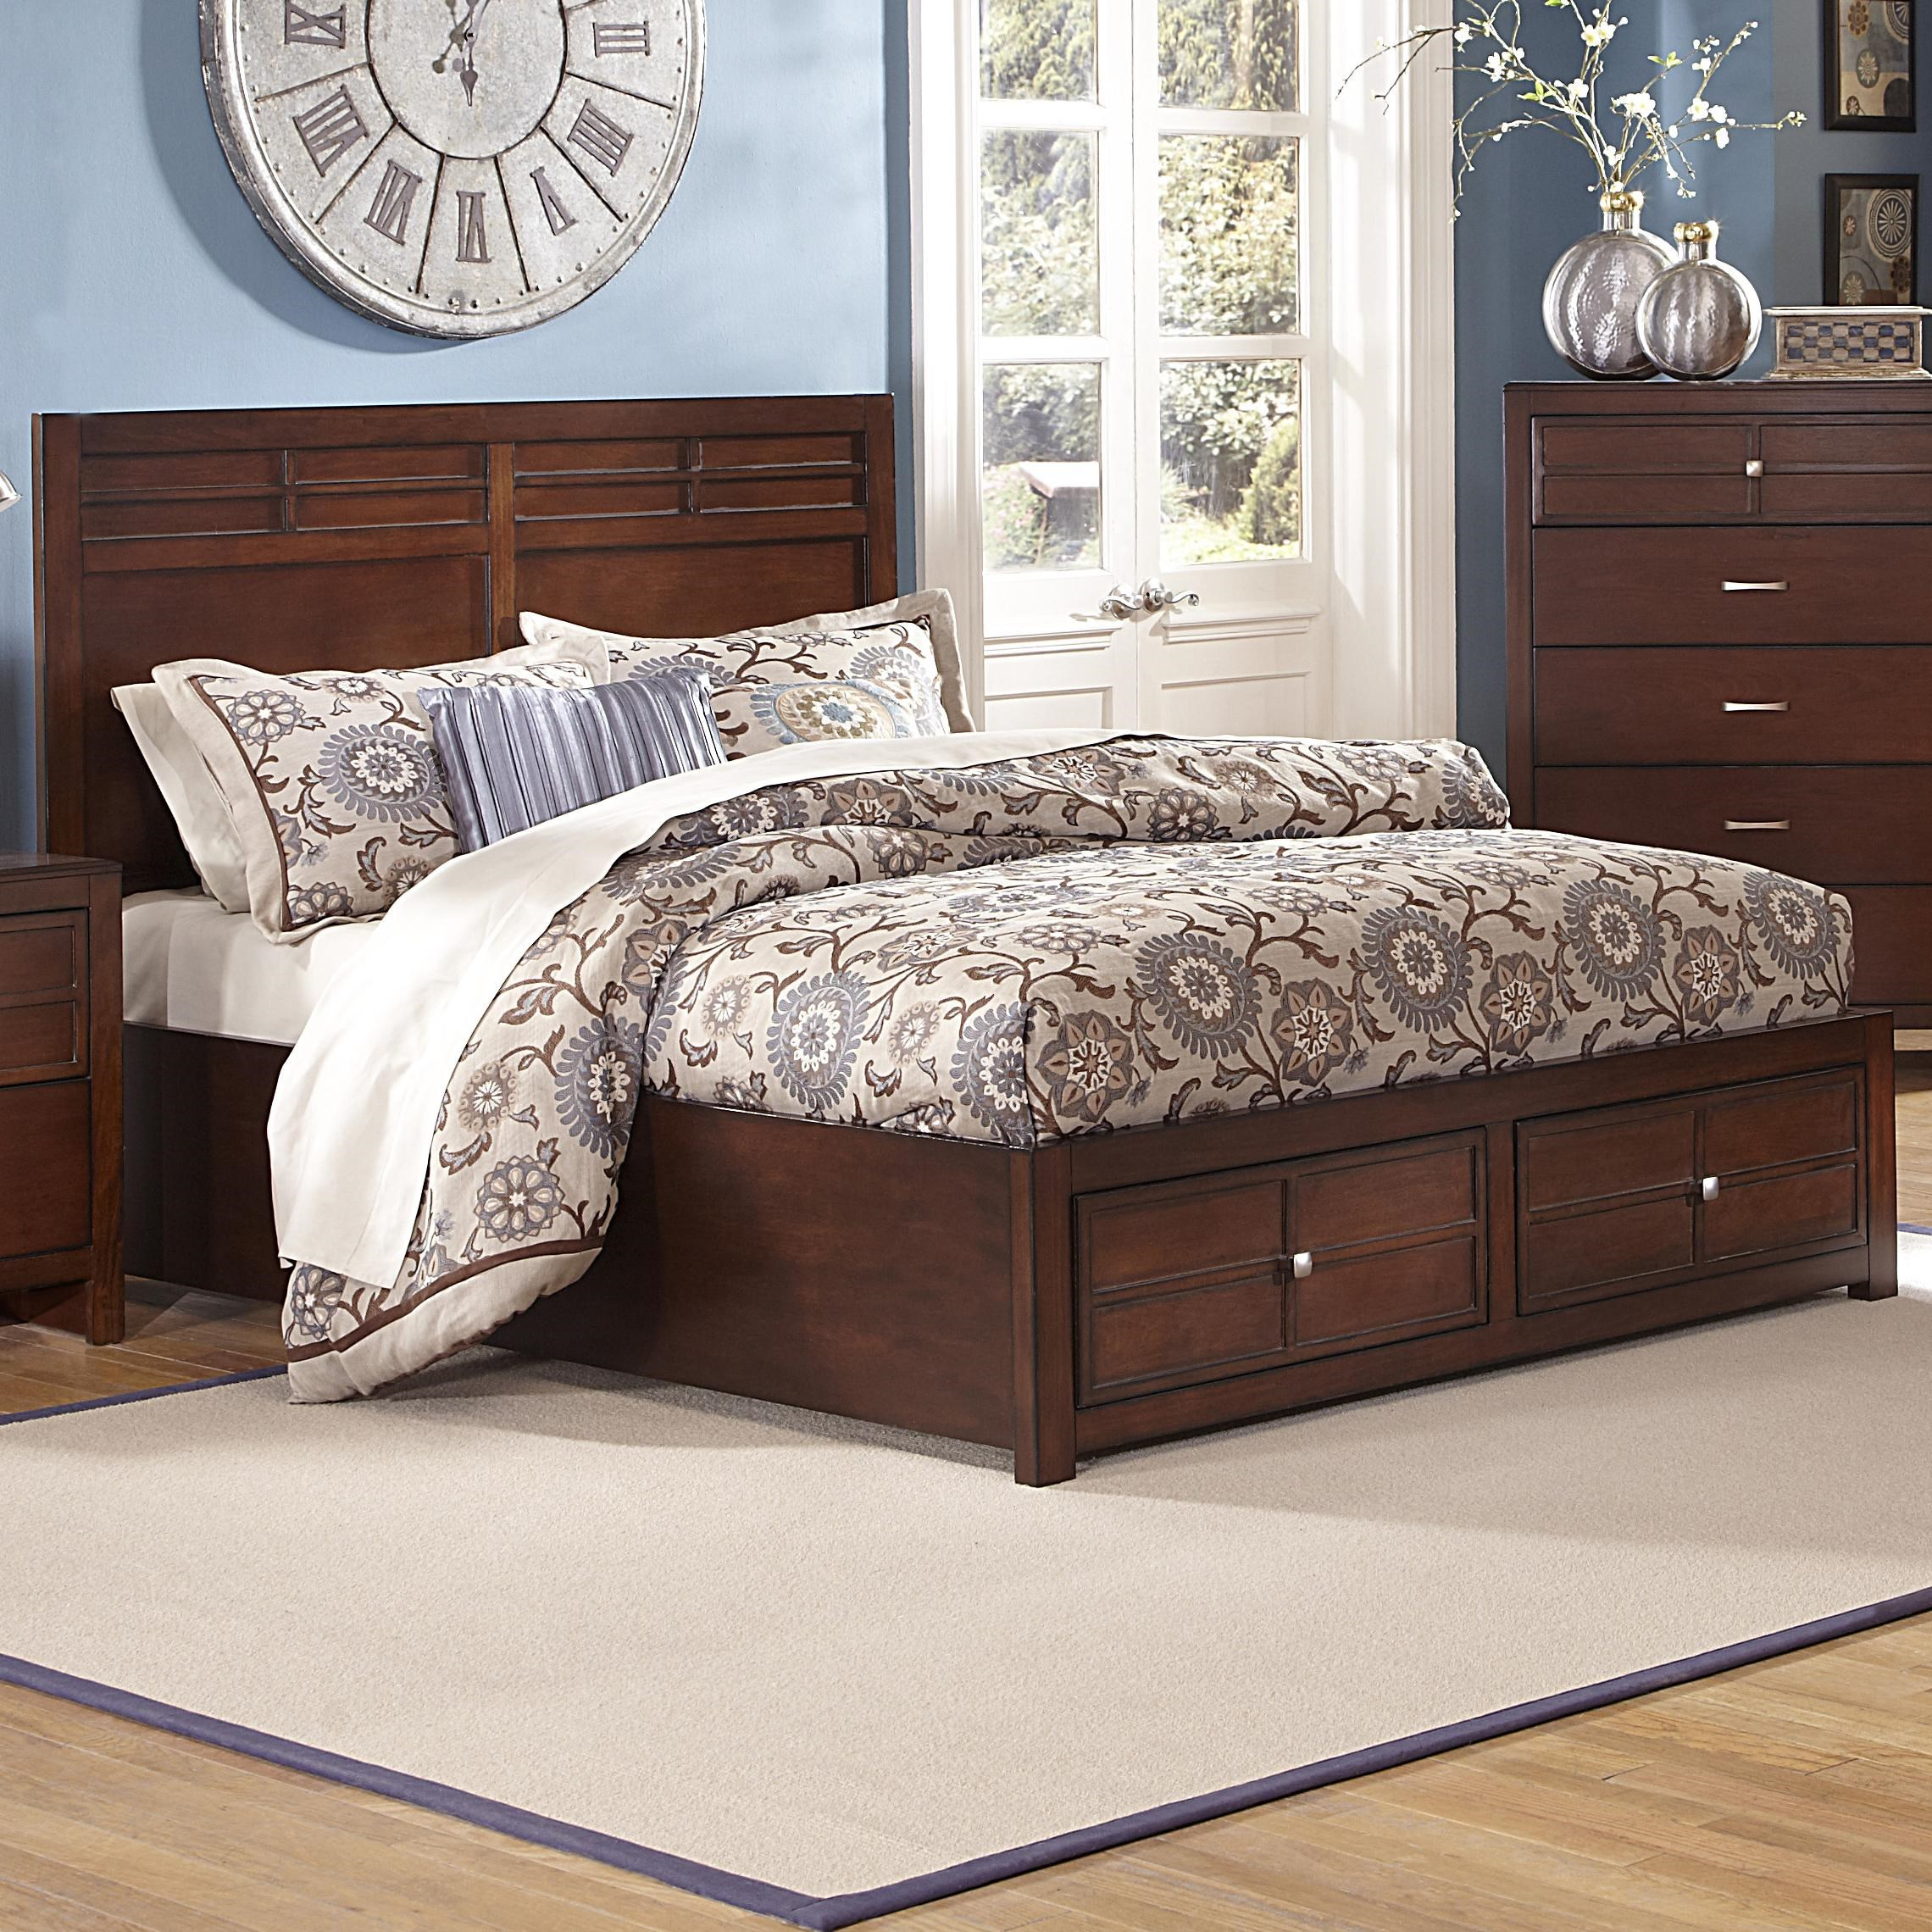 Lovely New Classic Kensington Queen Low Profile Bed With Storage Footboard